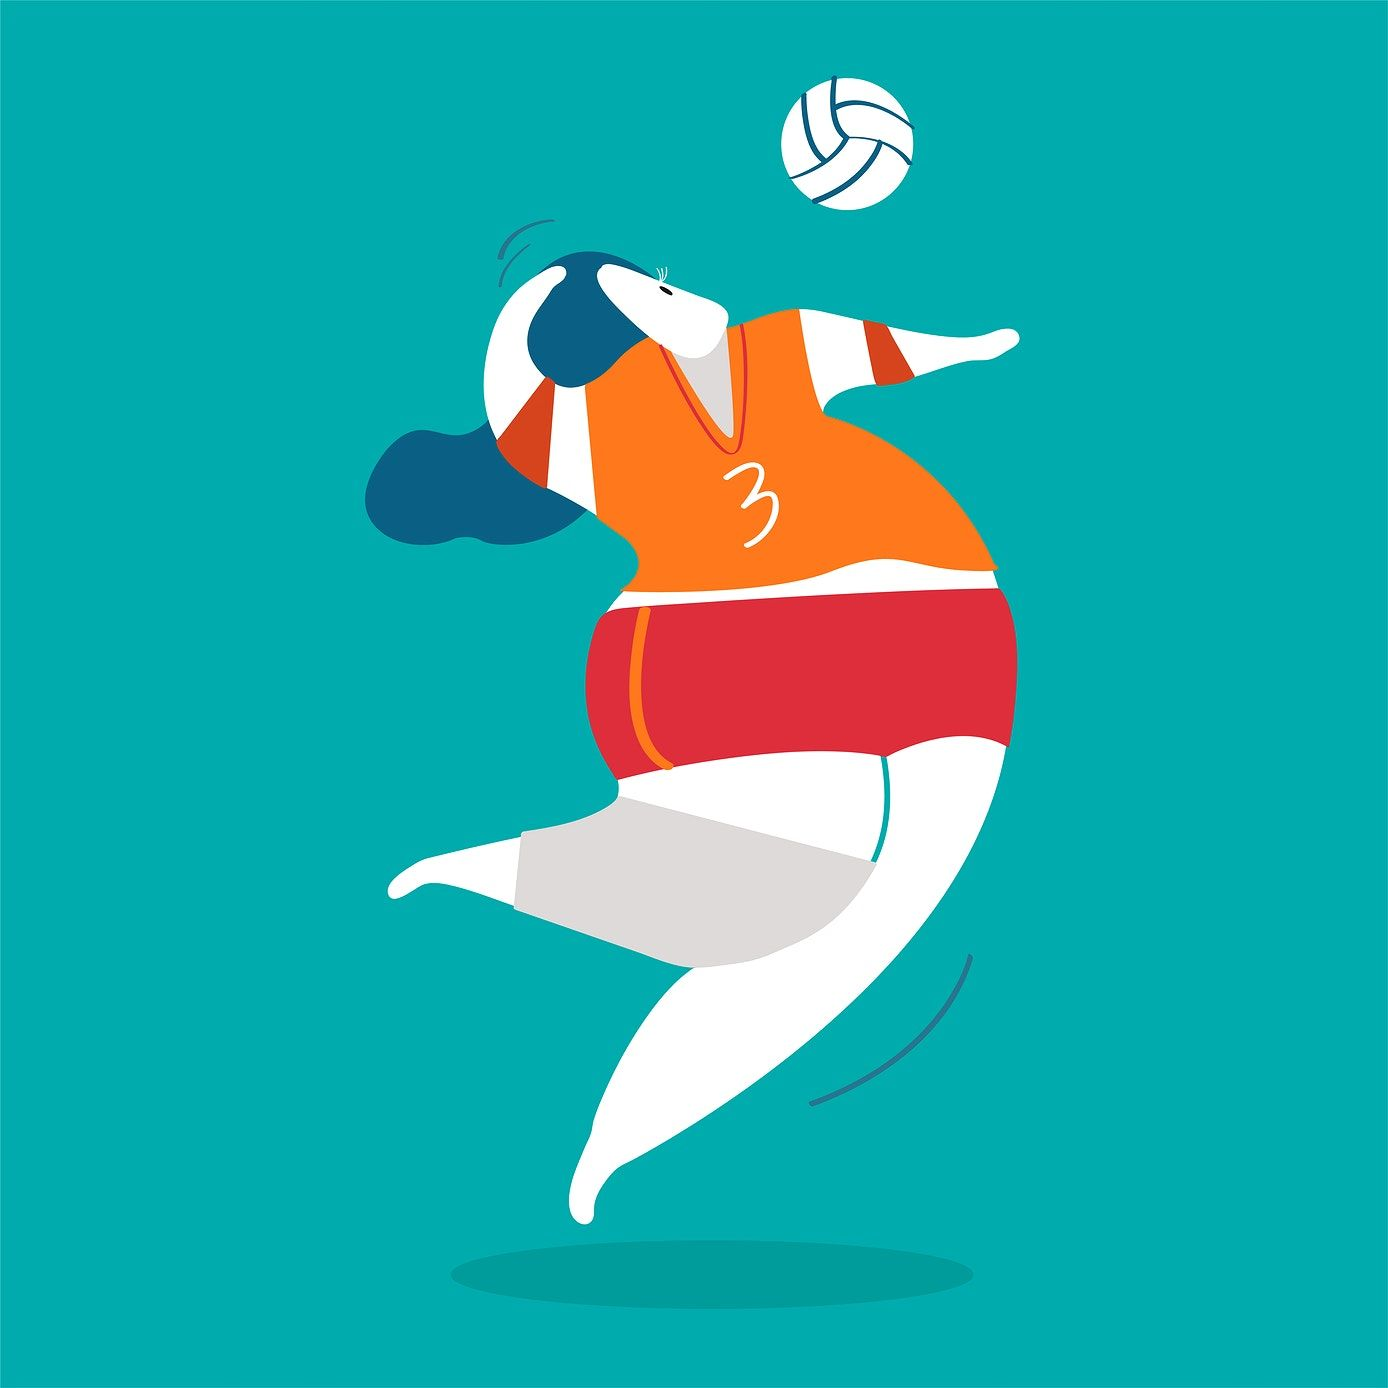 Character Illustration Of A Volleyball Player Free Image By Rawpixel Com Character Illustration Illustration Illustration Character Design